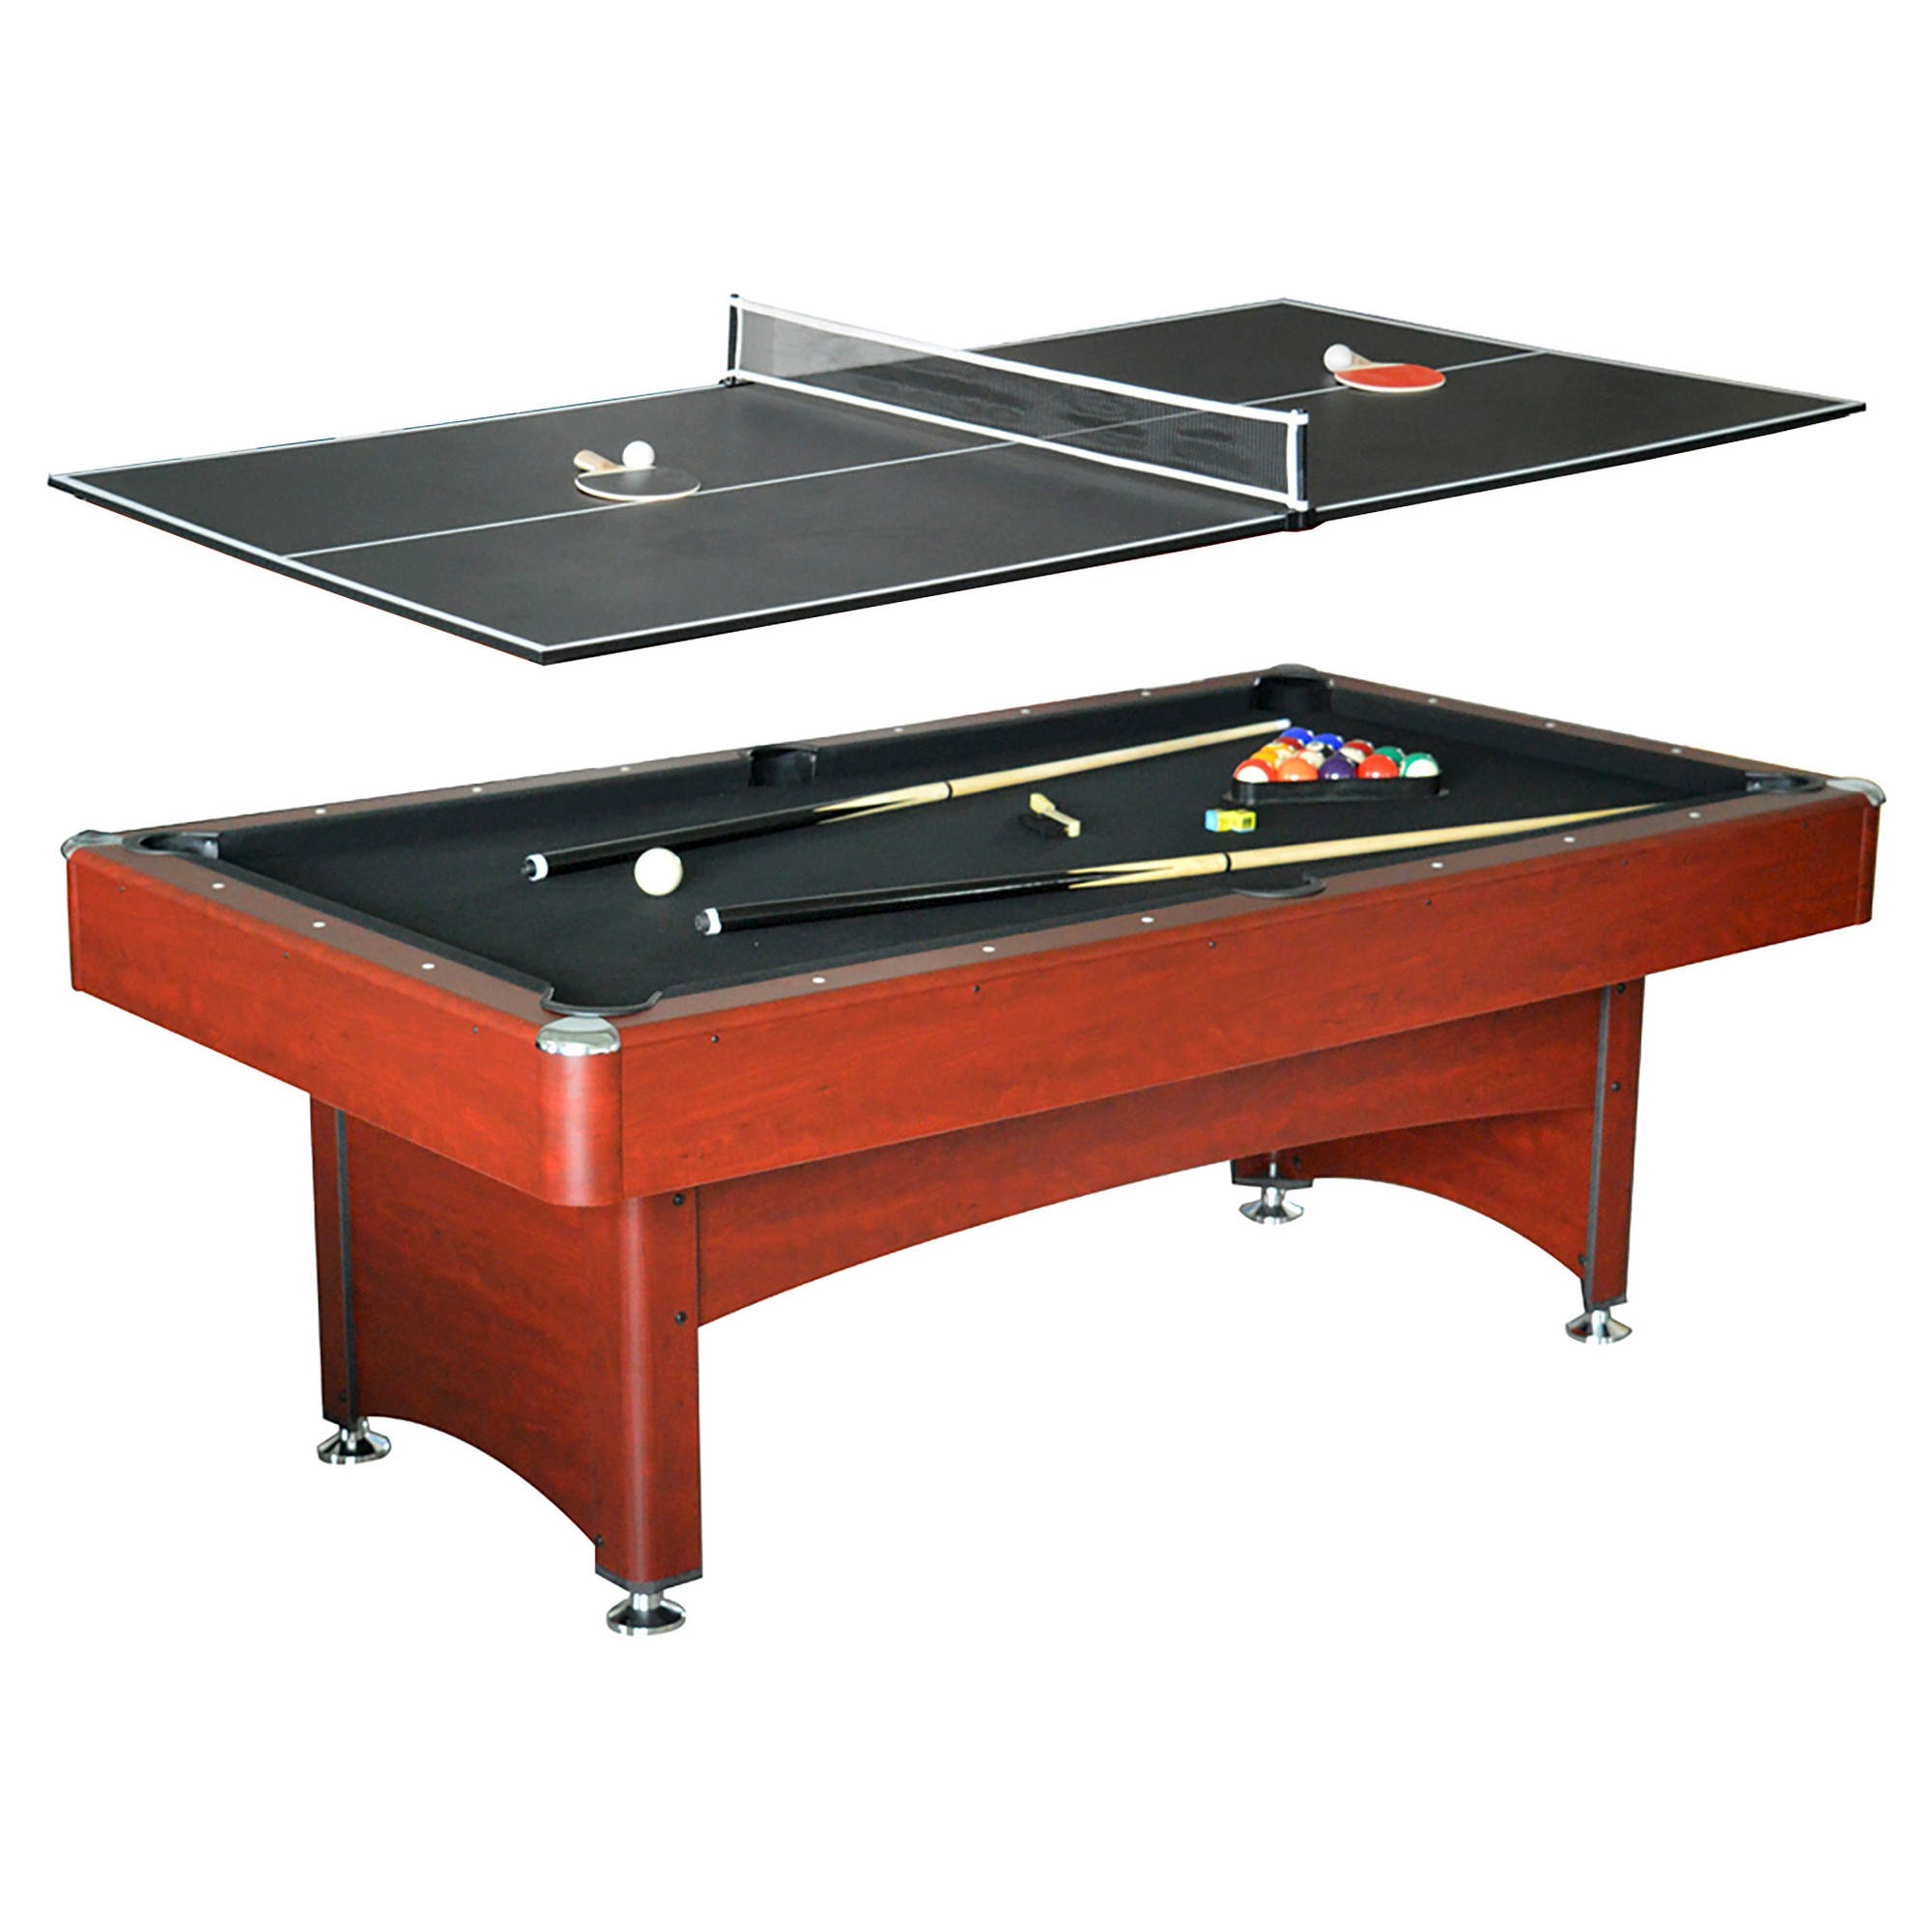 Second Hand Pool Table 8 Foot Moderna Model With Real Slate